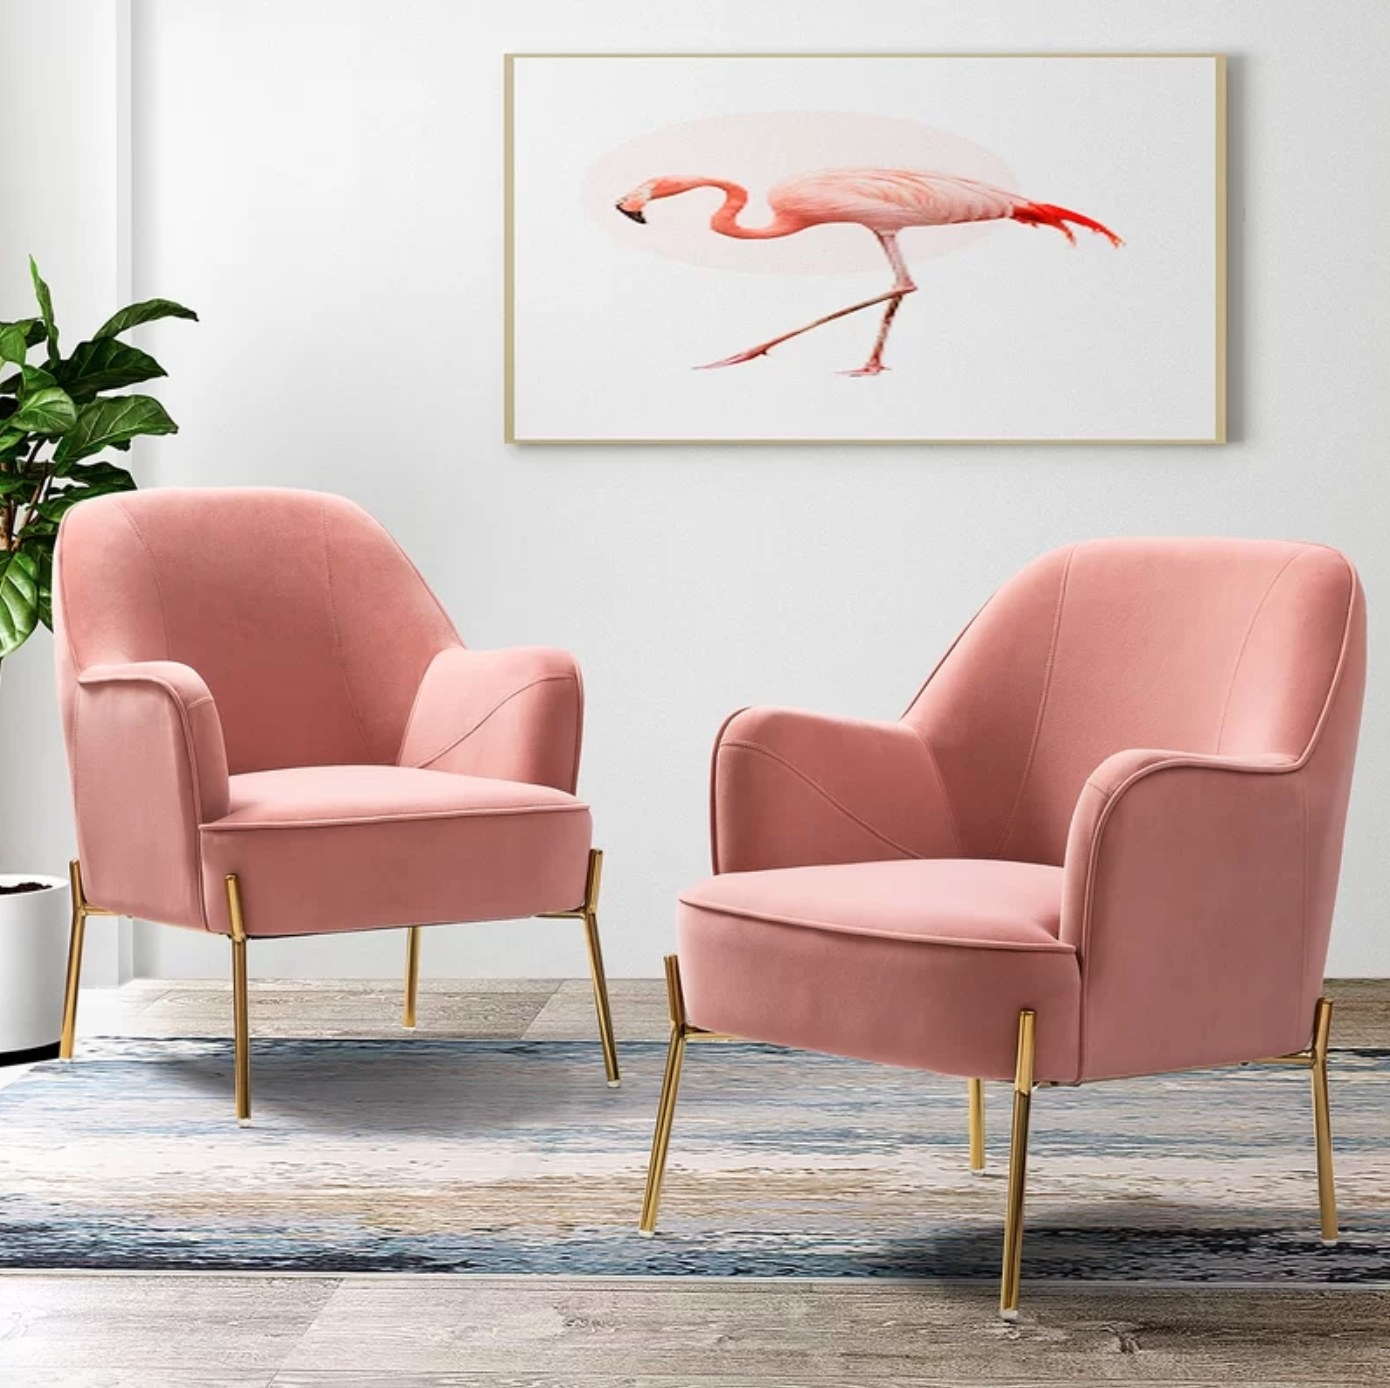 The set of two armchairs in pink